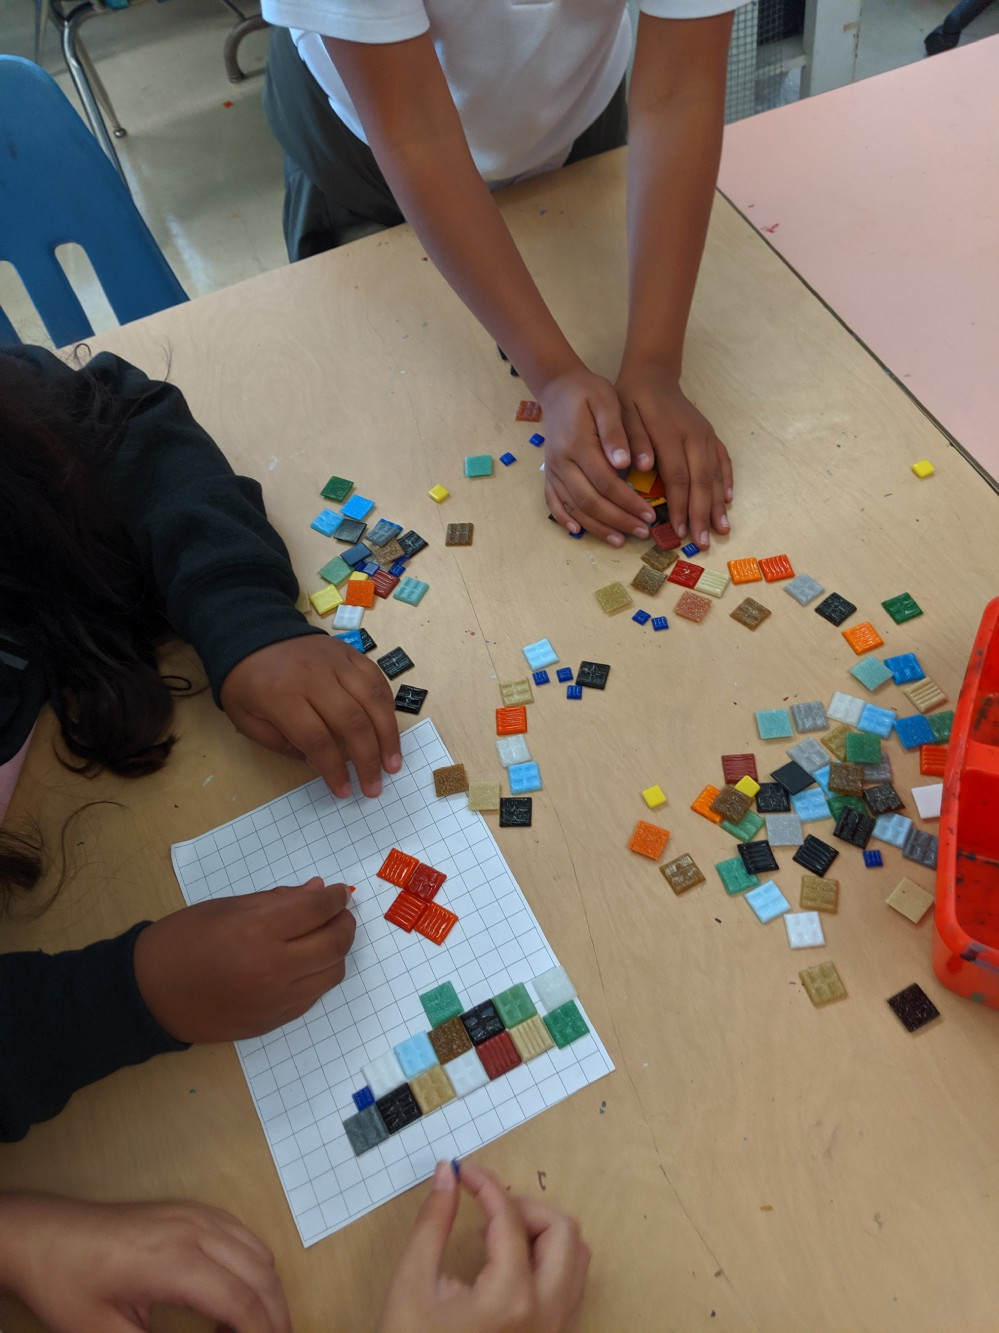 Three students working with mosaic tiles. They are laying them on grid paper to create a picture.